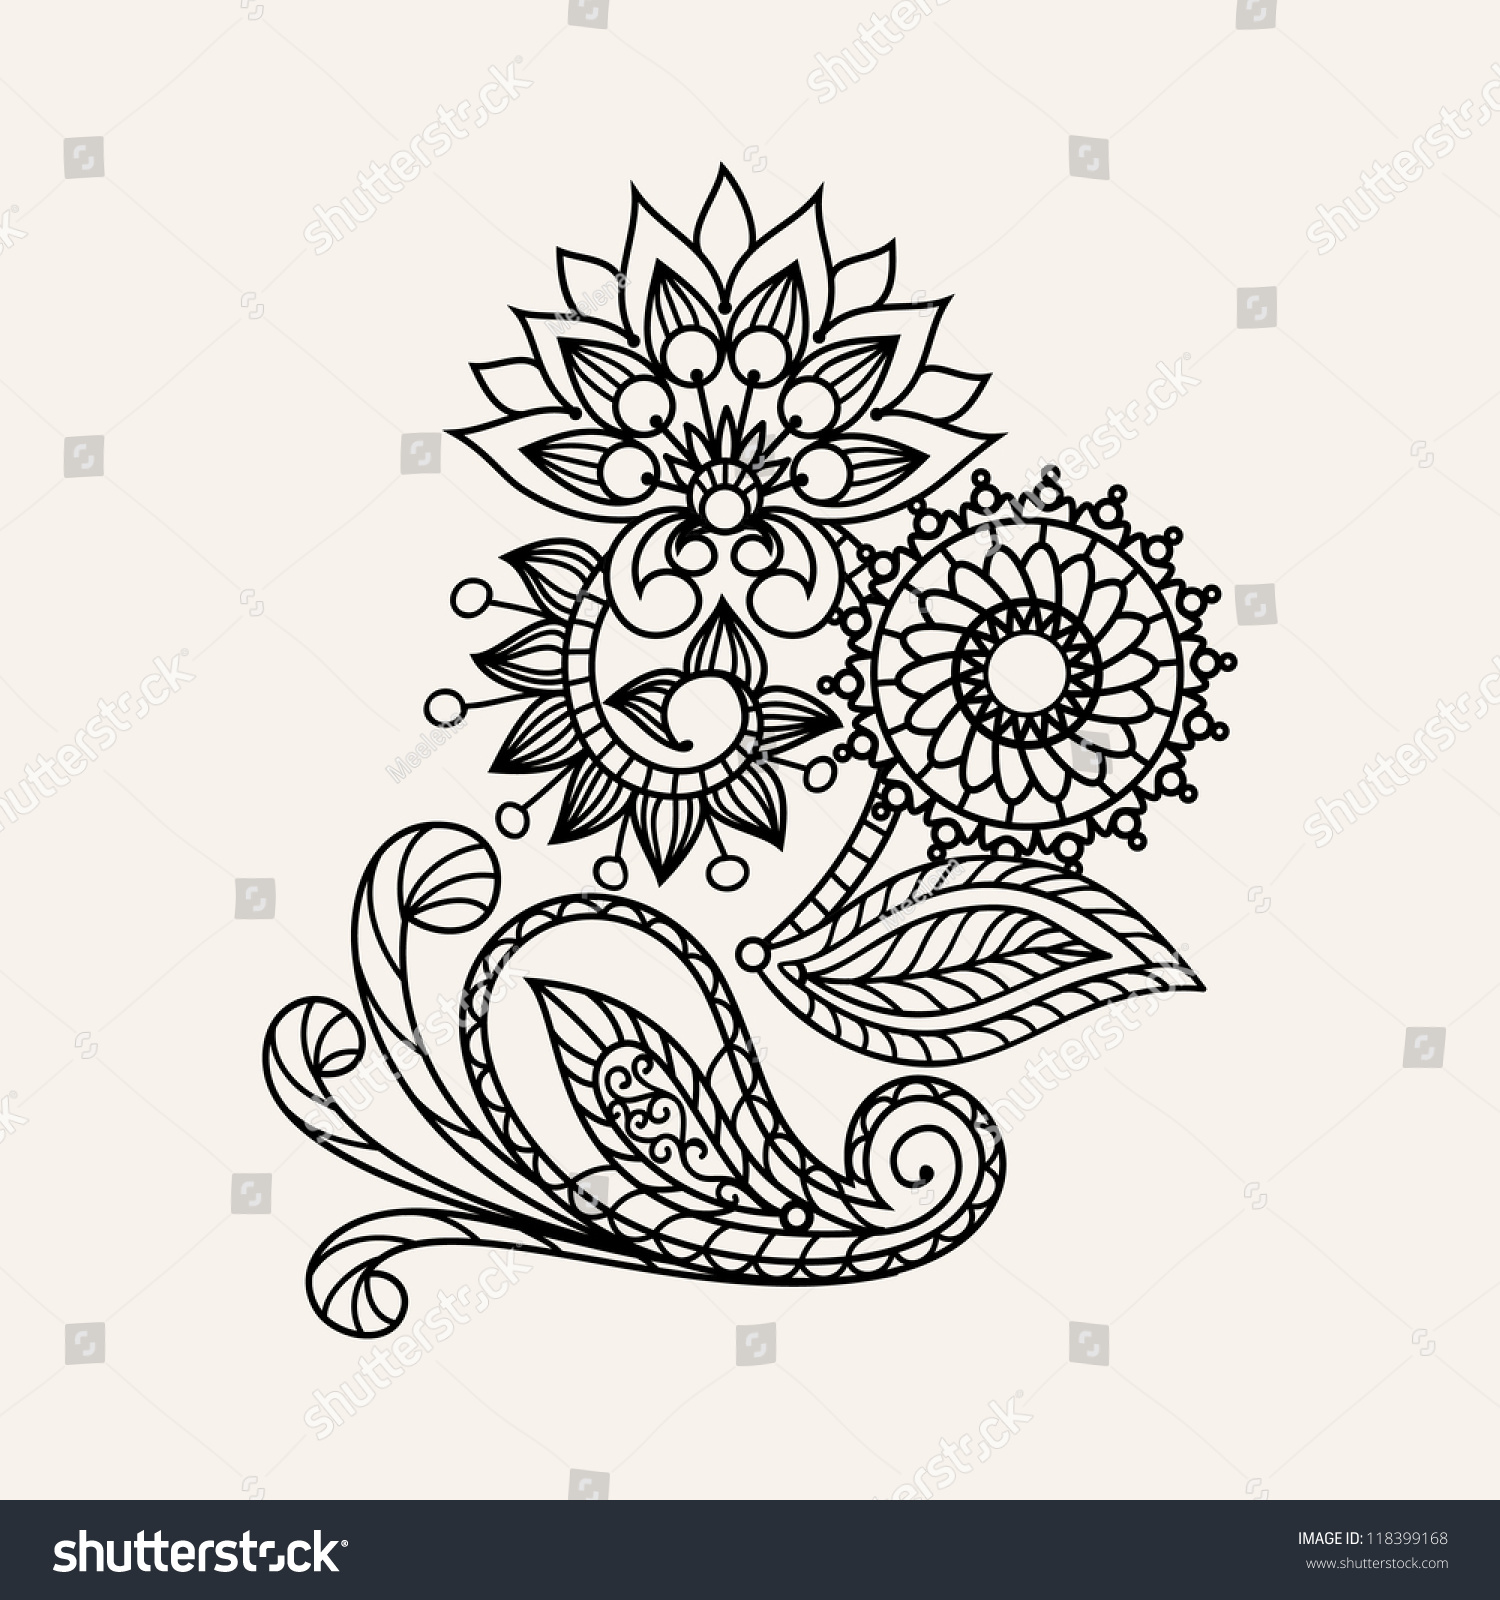 floral pattern hand drawing illustration henna stock